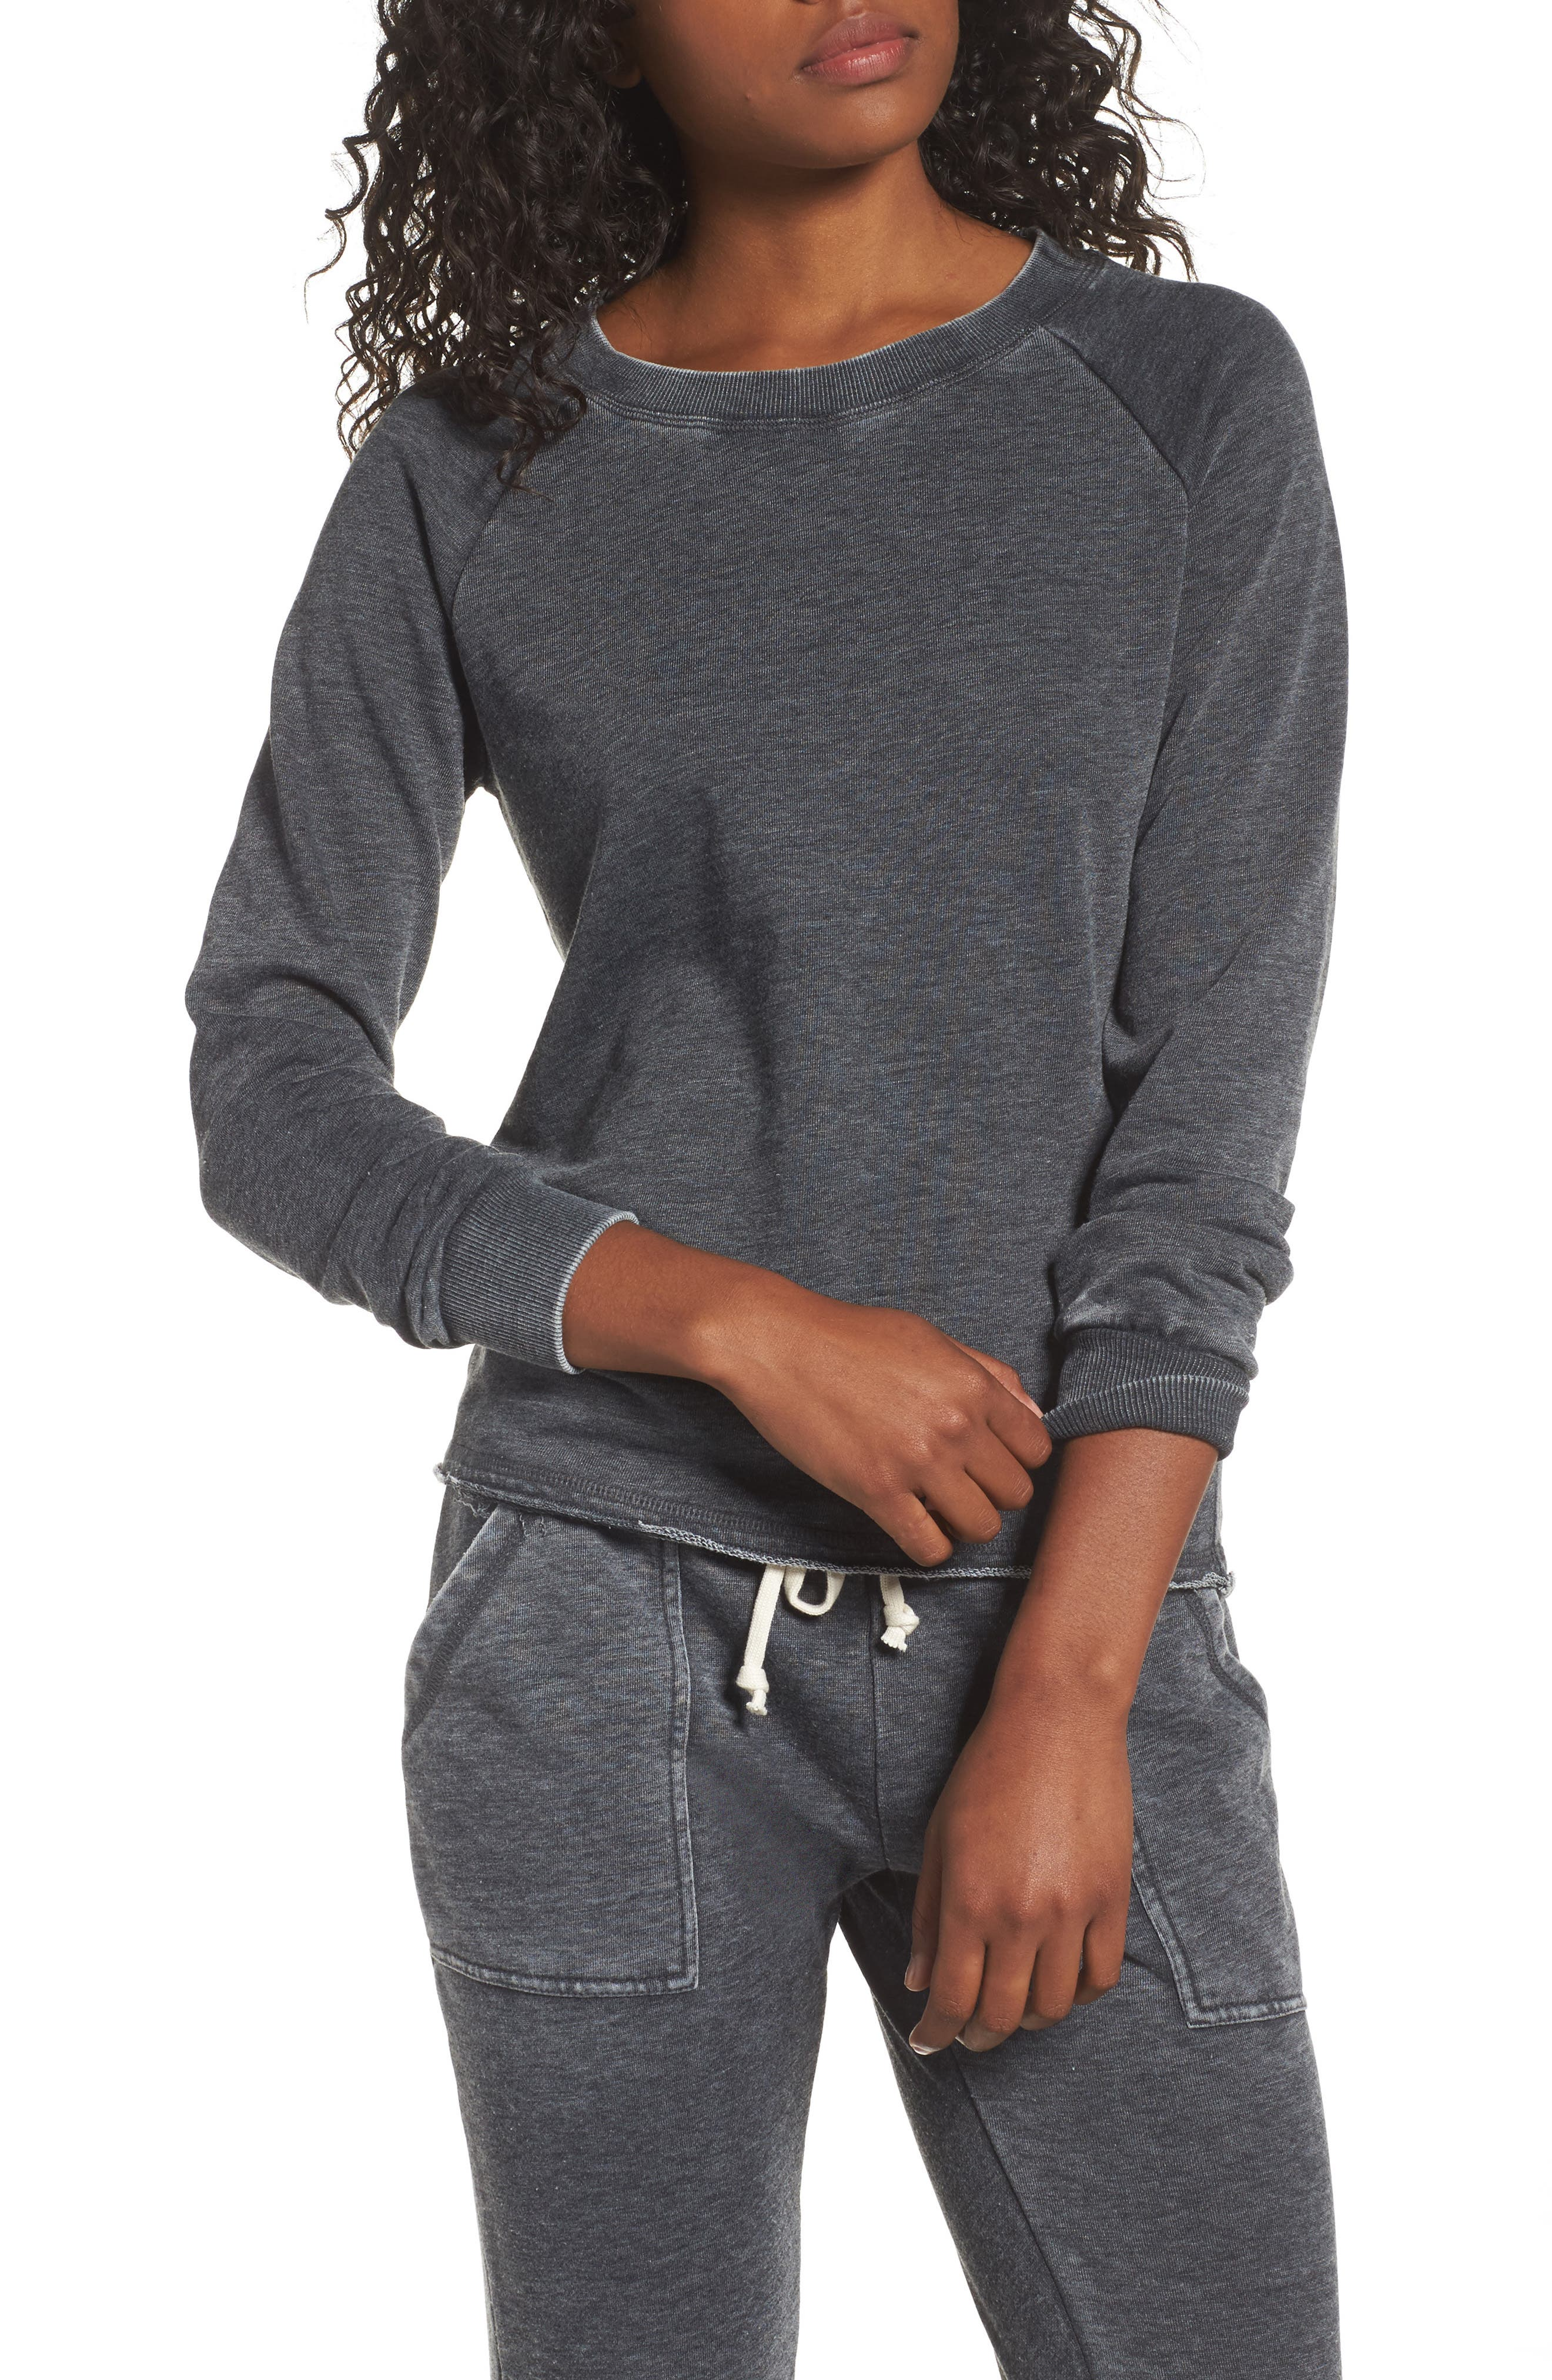 Lazy Day Pullover,                         Main,                         color, Washed Black